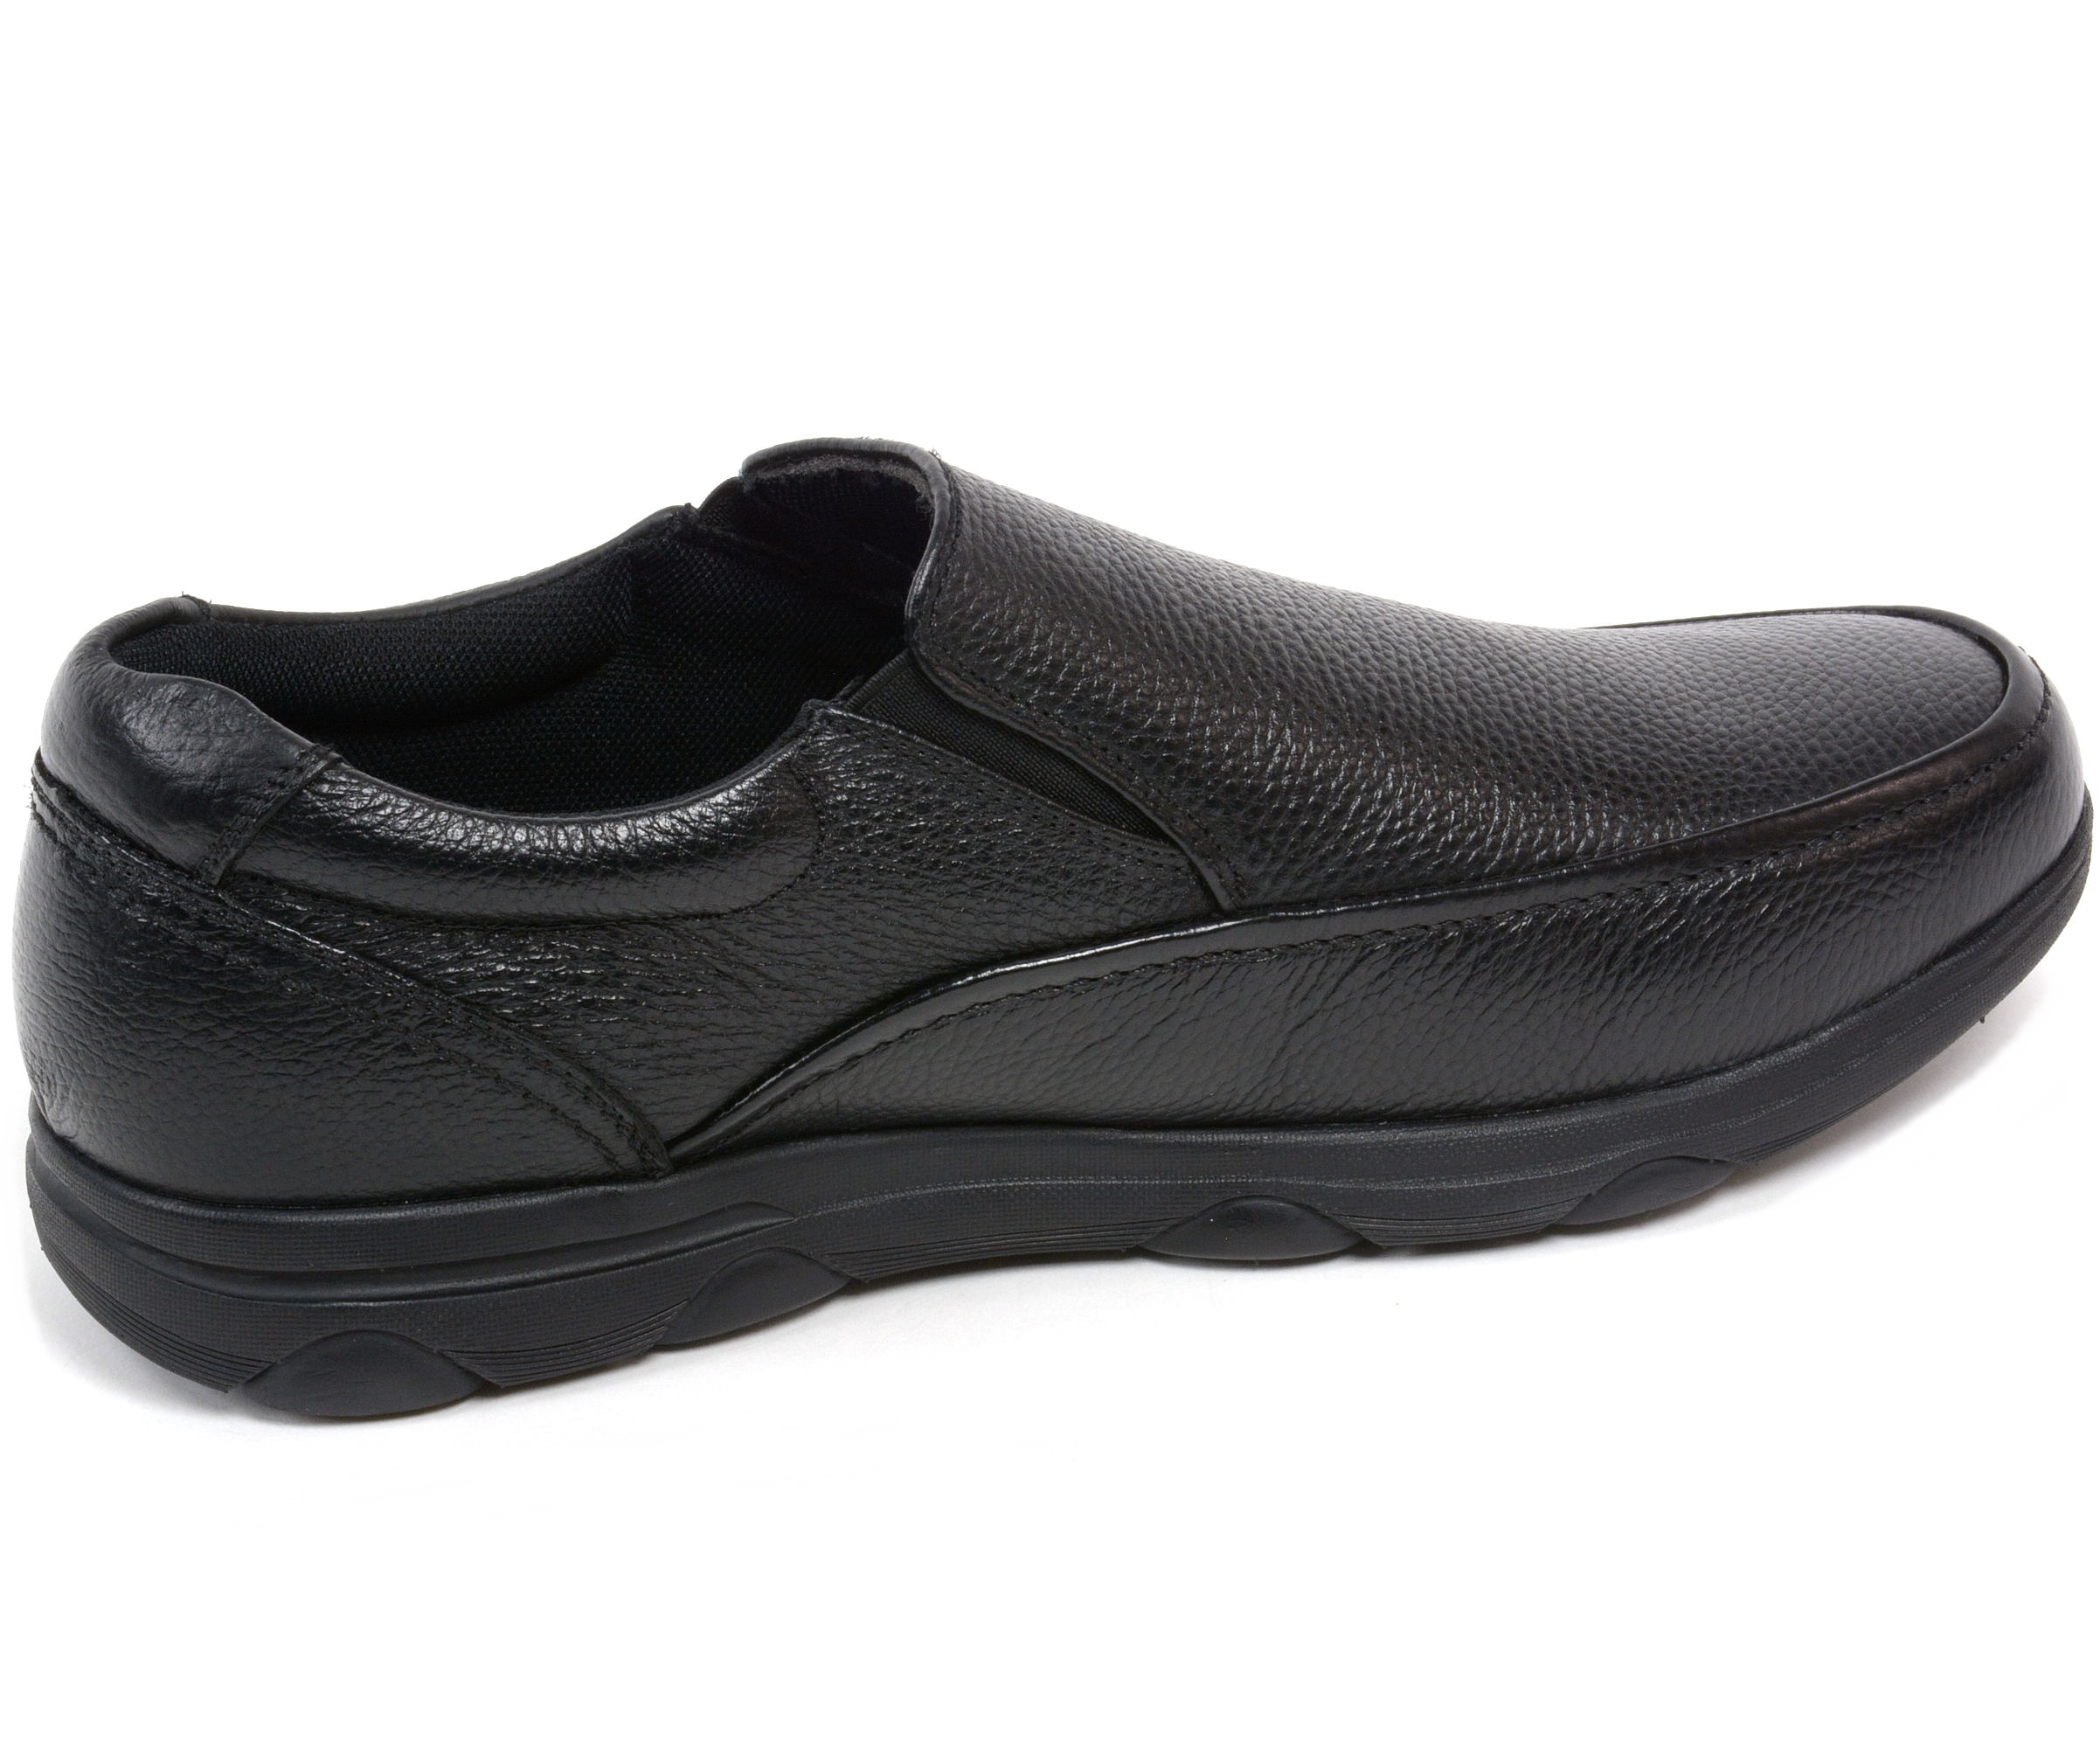 Alpine Swiss Arbete Mens Work Shoes Slip Resistant Real Leather Slip-On  Loafers - Walmart.com